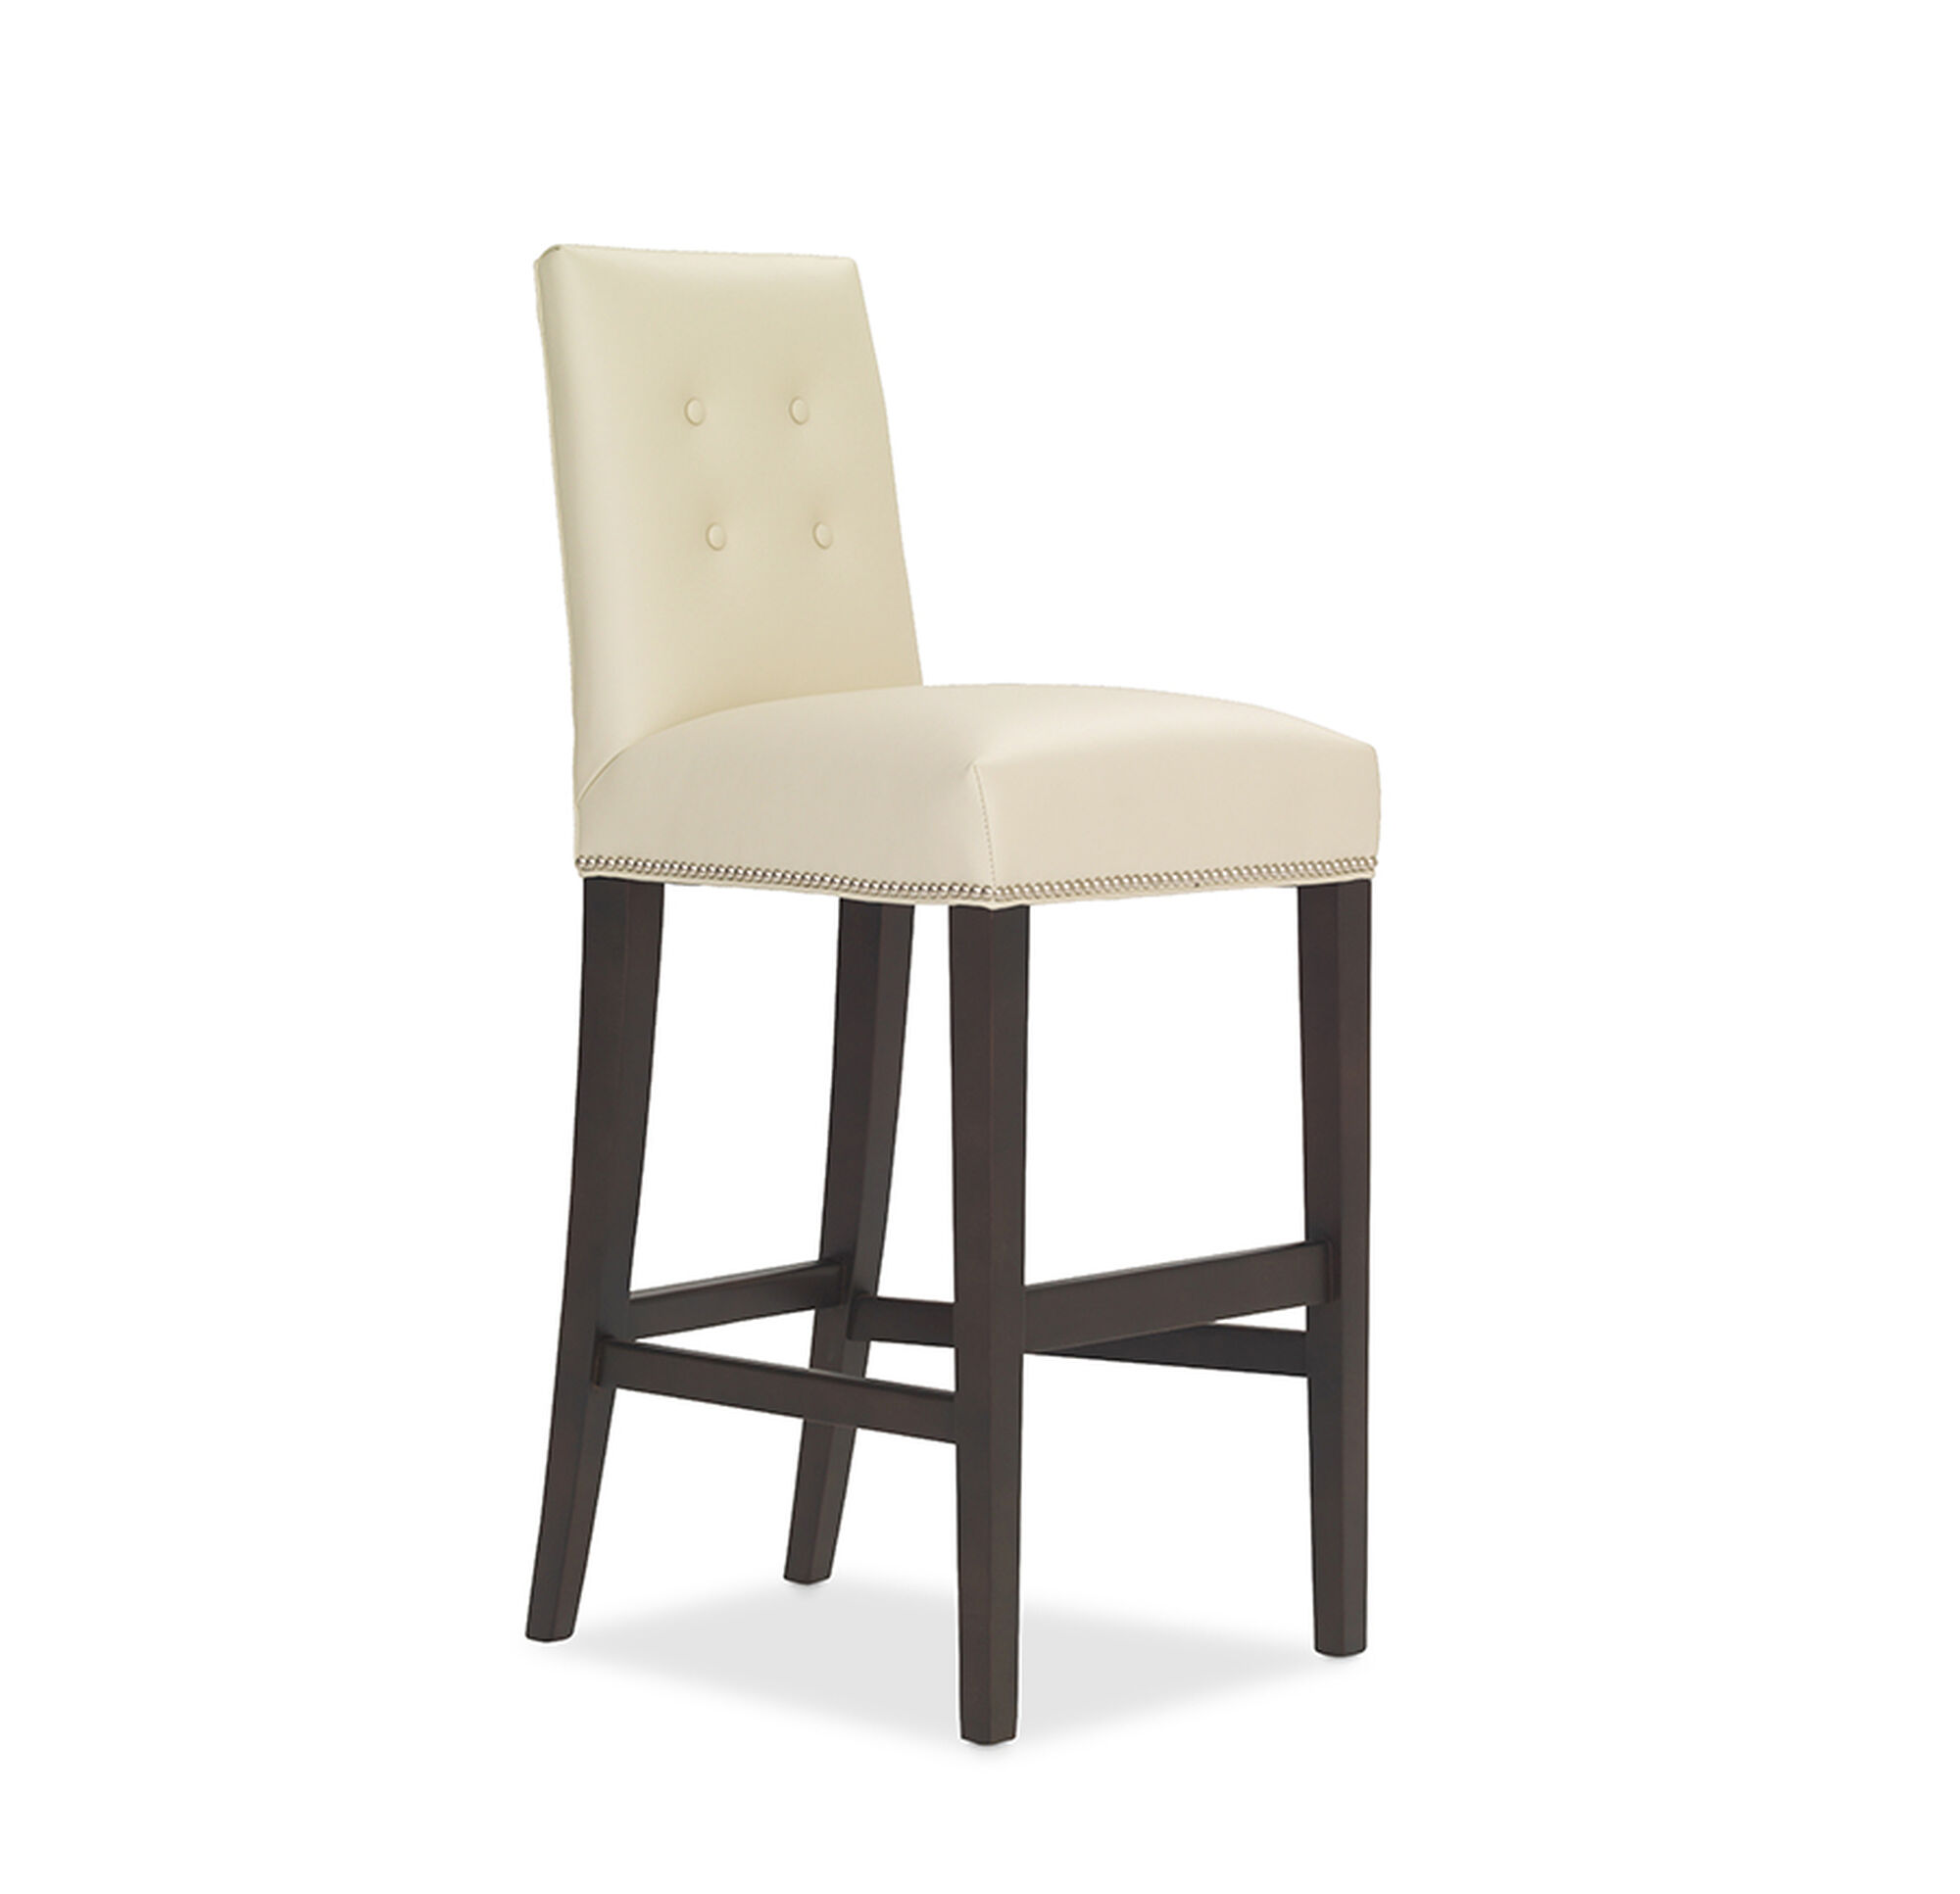 OLIVER LEATHER BAR STOOL : 1680 027L NNCordell Dove 2057HERO from www.mgbwhome.com size 2000 x 1933 jpeg 94kB